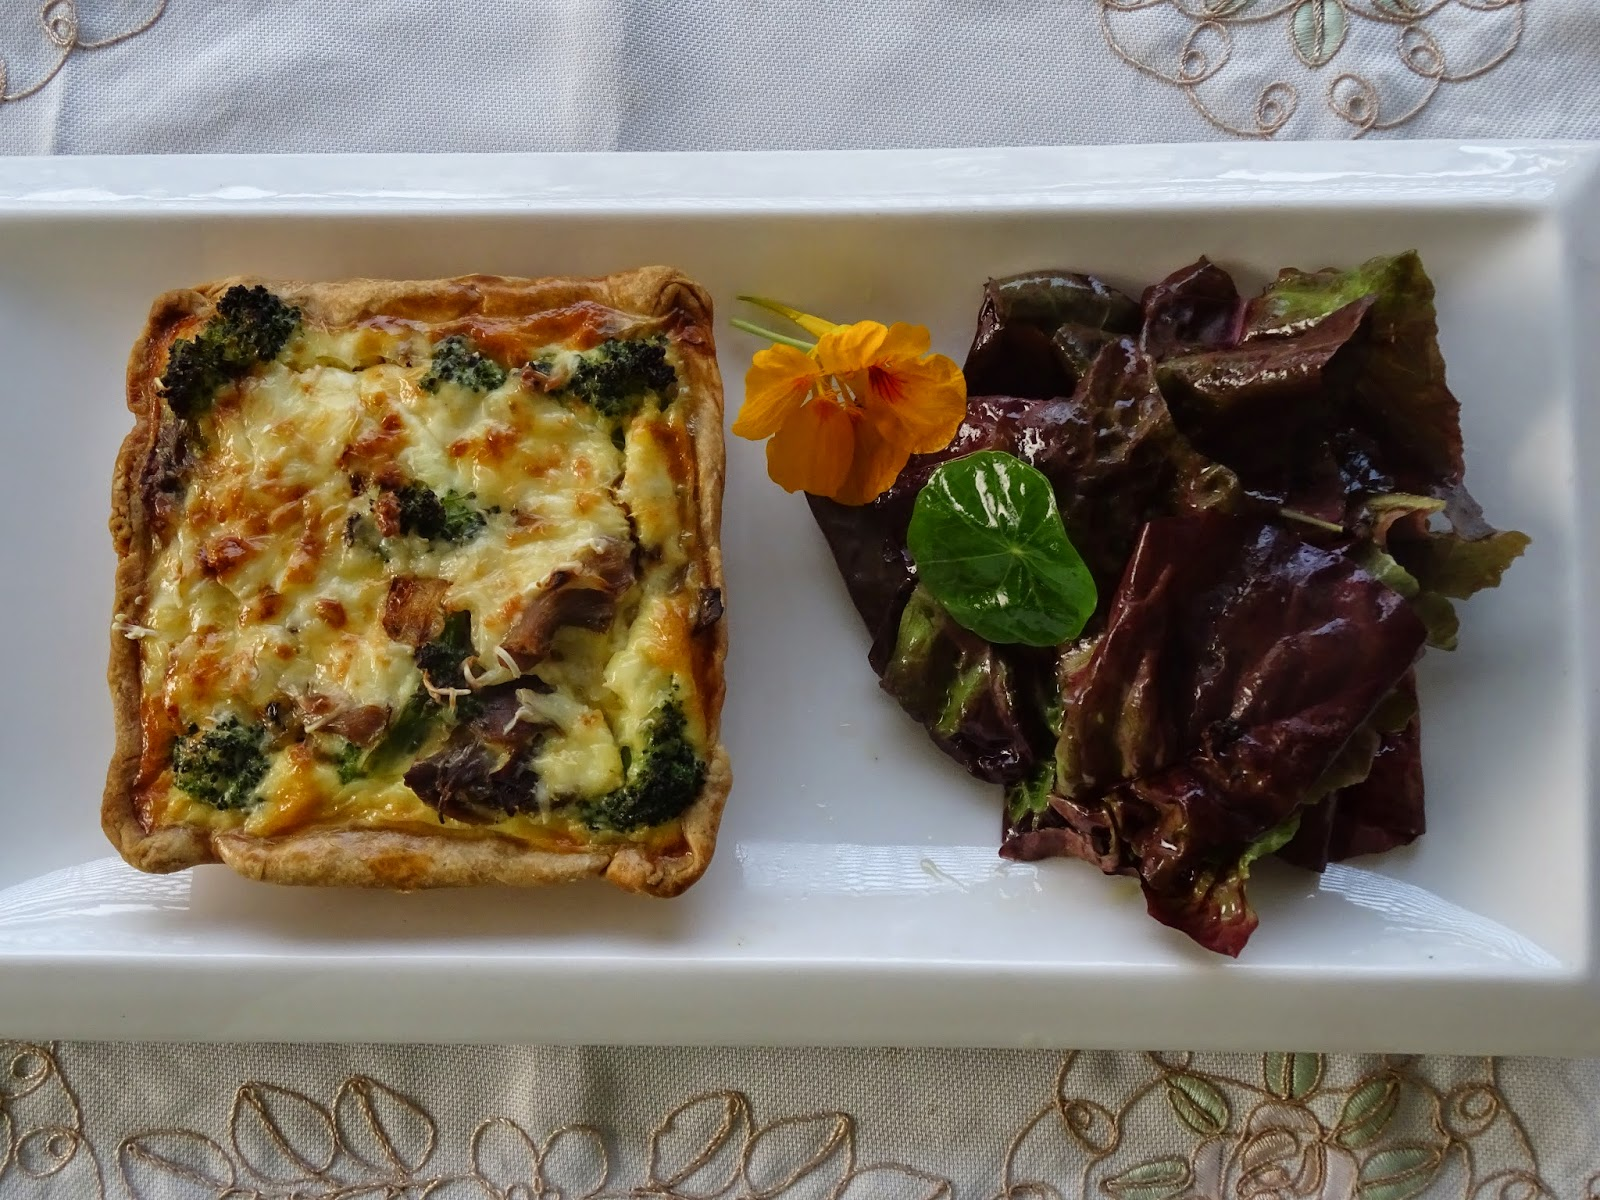 Broccoli & chicken quiche